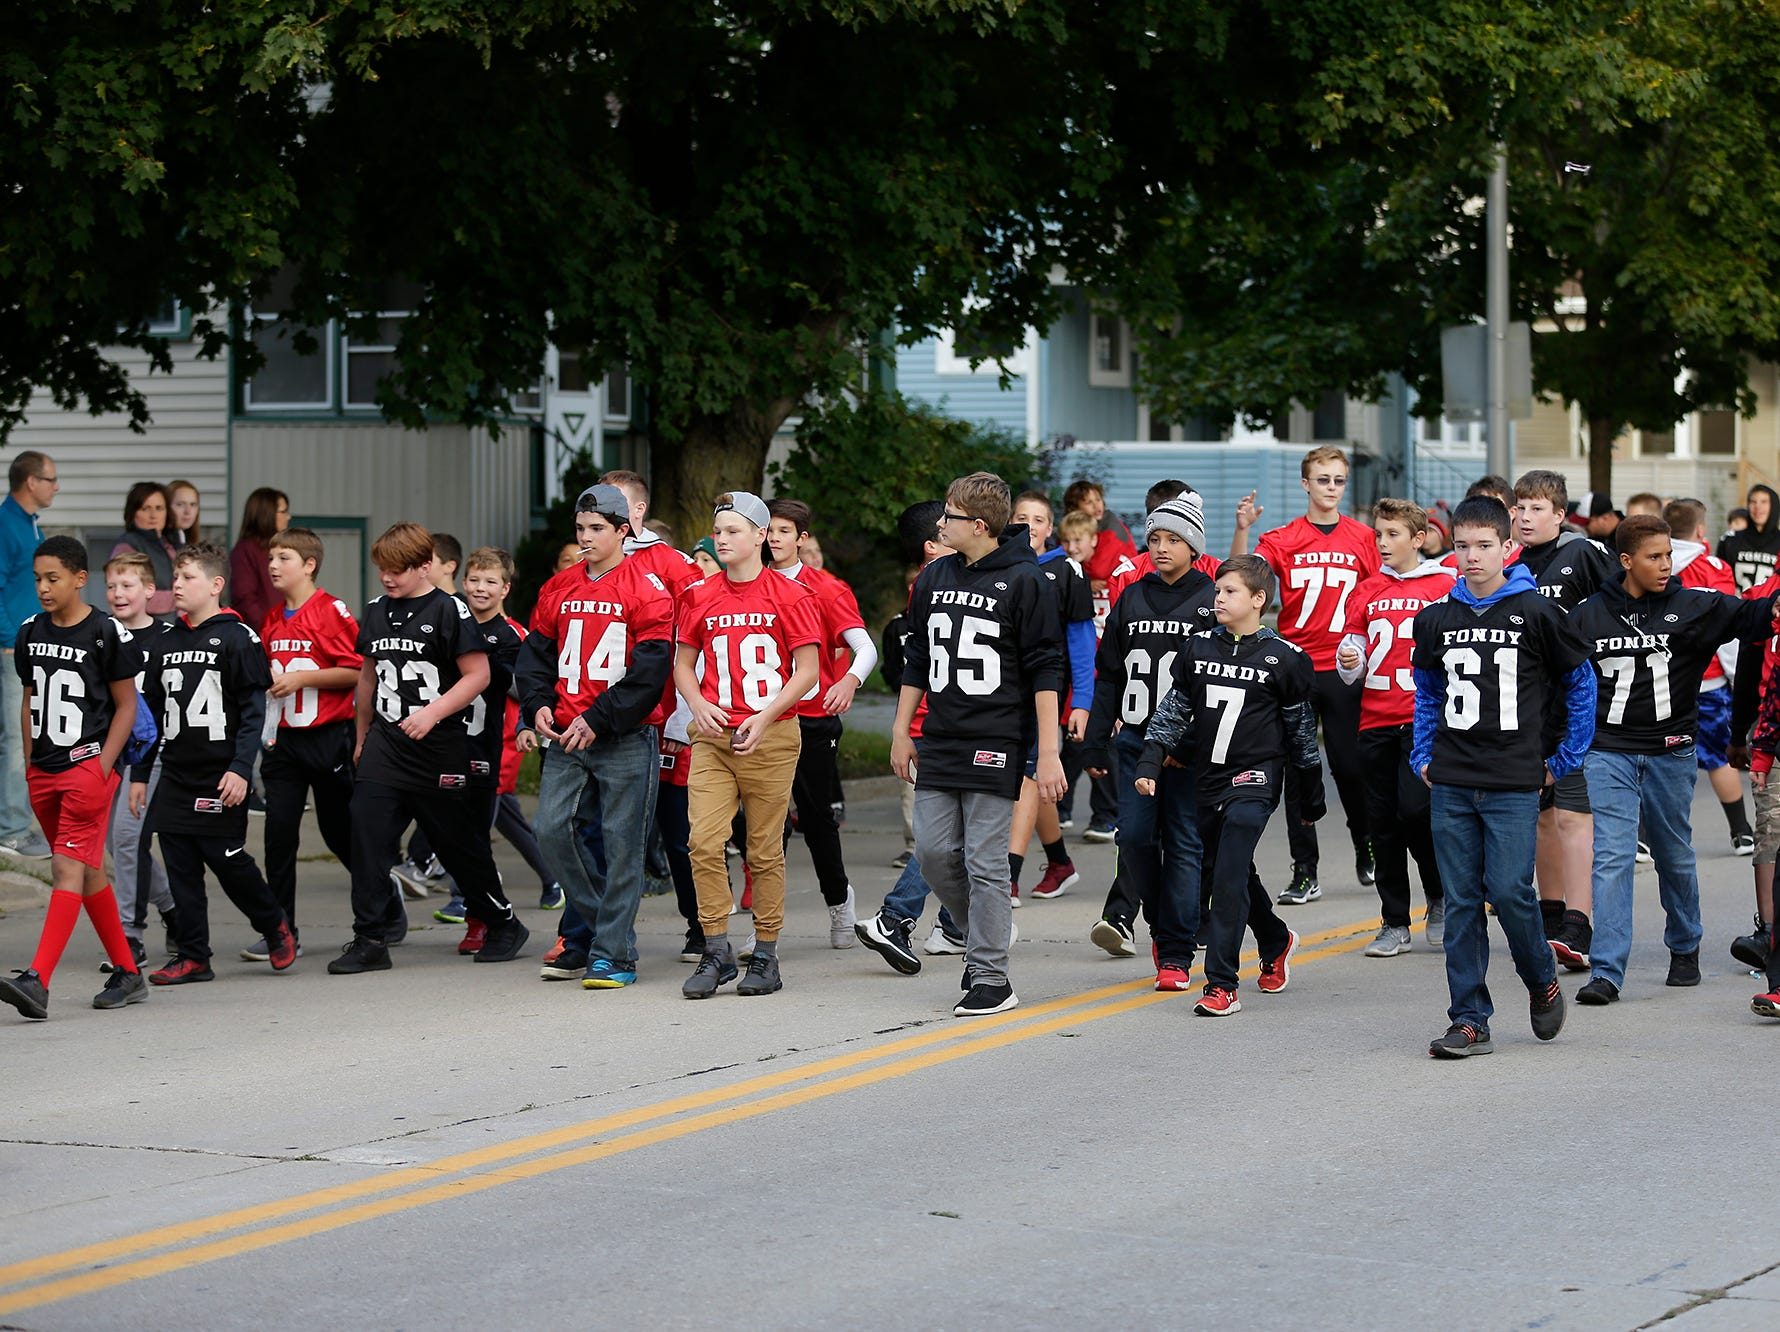 Fond du Lac grade school and middle school football players march in the Fond du Lac High School football homecoming parade Friday, Sept. 28, 2018, which went down portions of Martin Avenue and Ninth Street in Fond du Lac, Wisconsin.